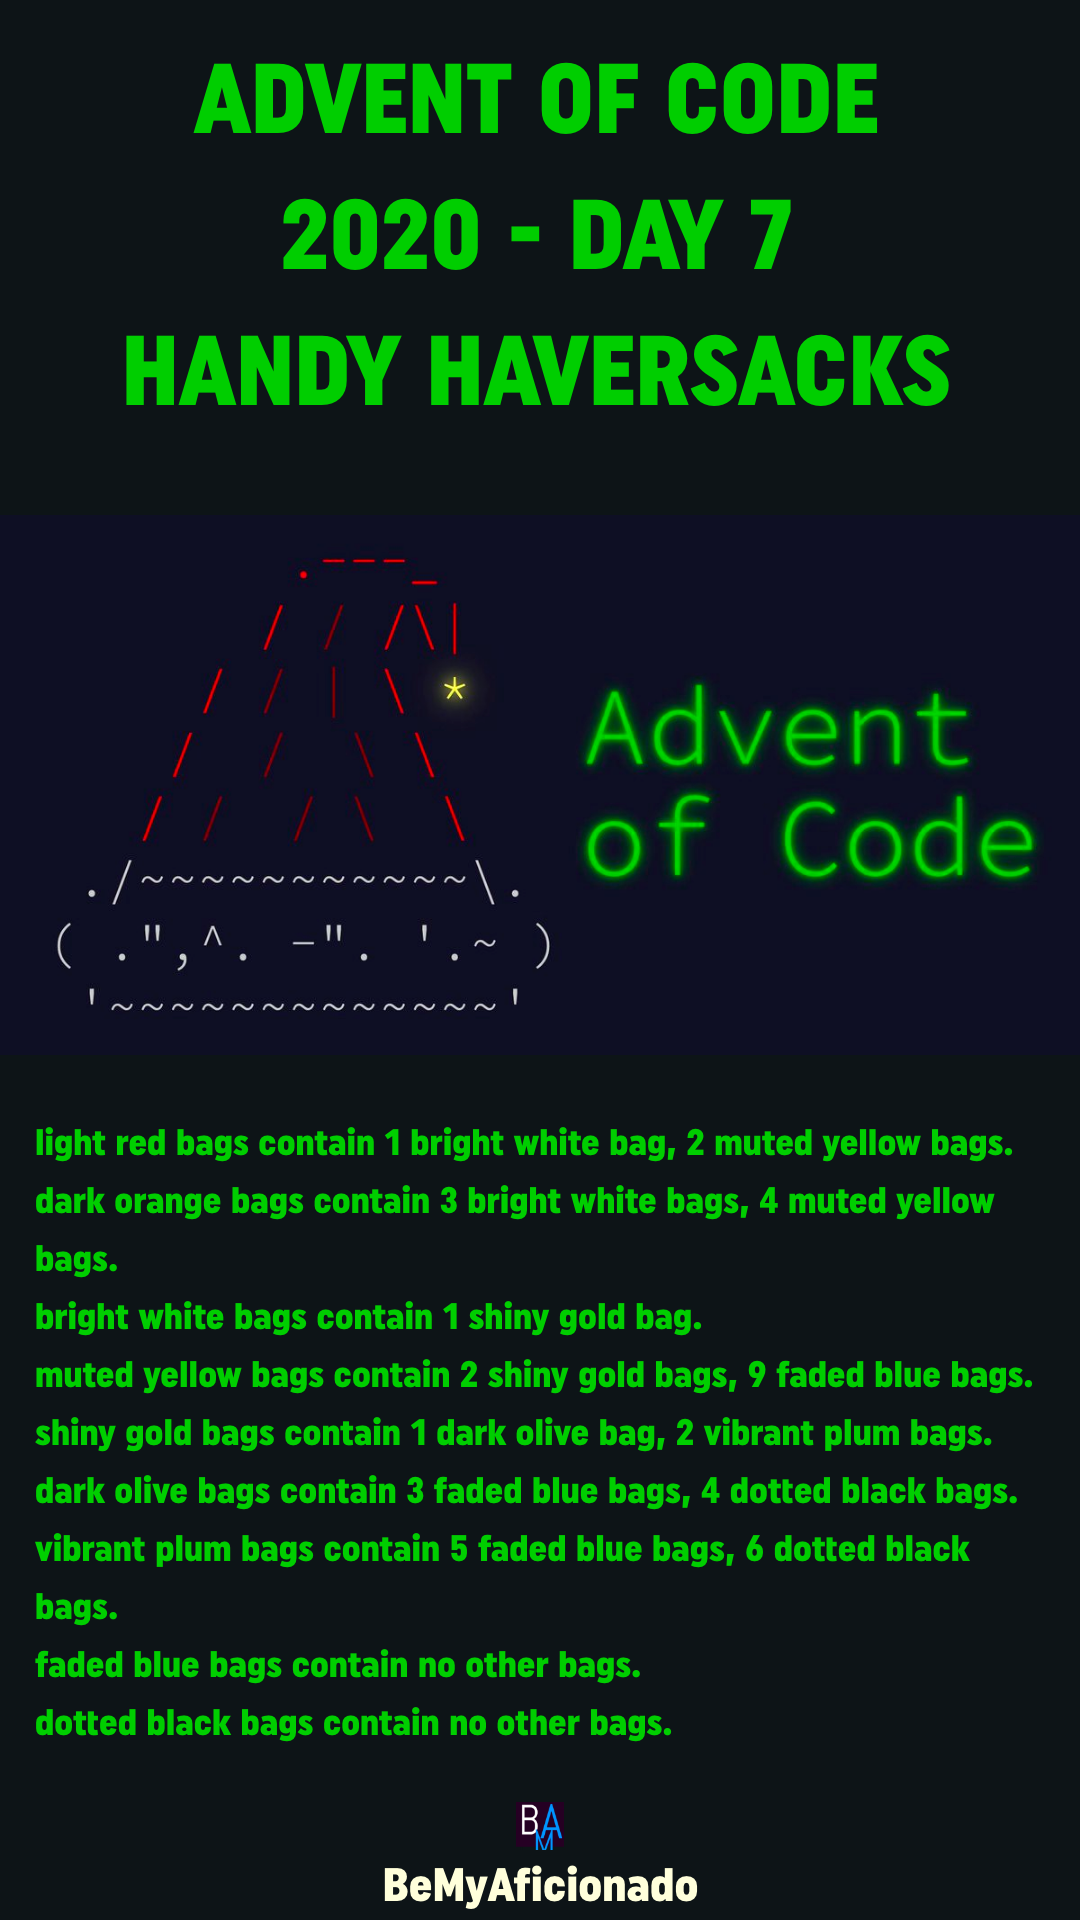 Advent of Code 2020 - DAY 7